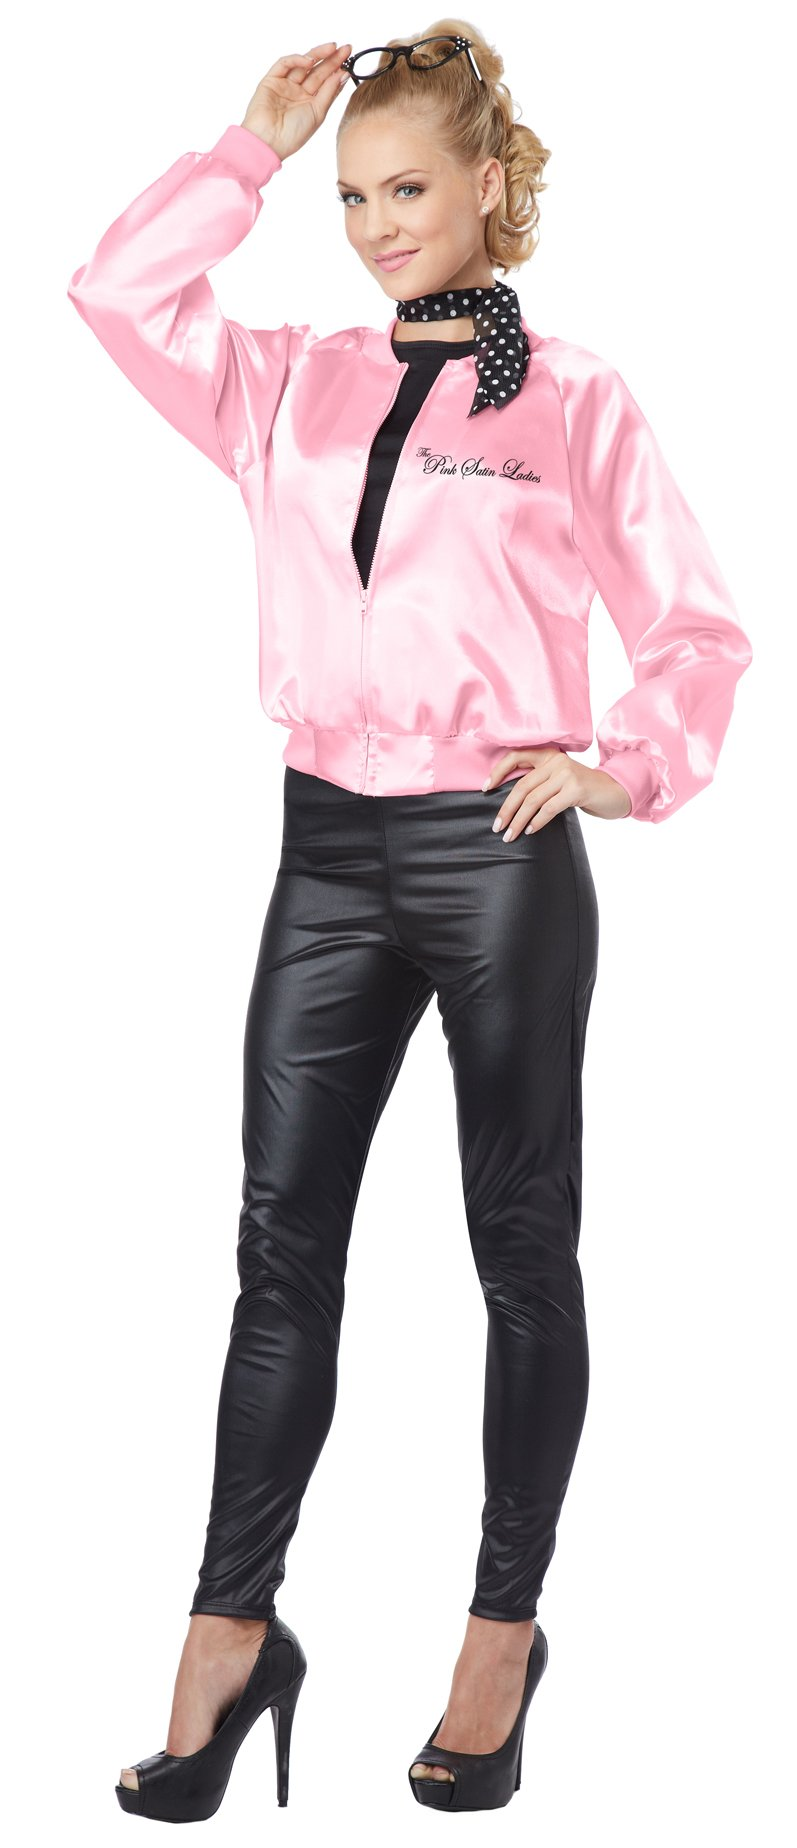 California Costumes Women's The Pink Satin Ladies Adult, Pink, Small